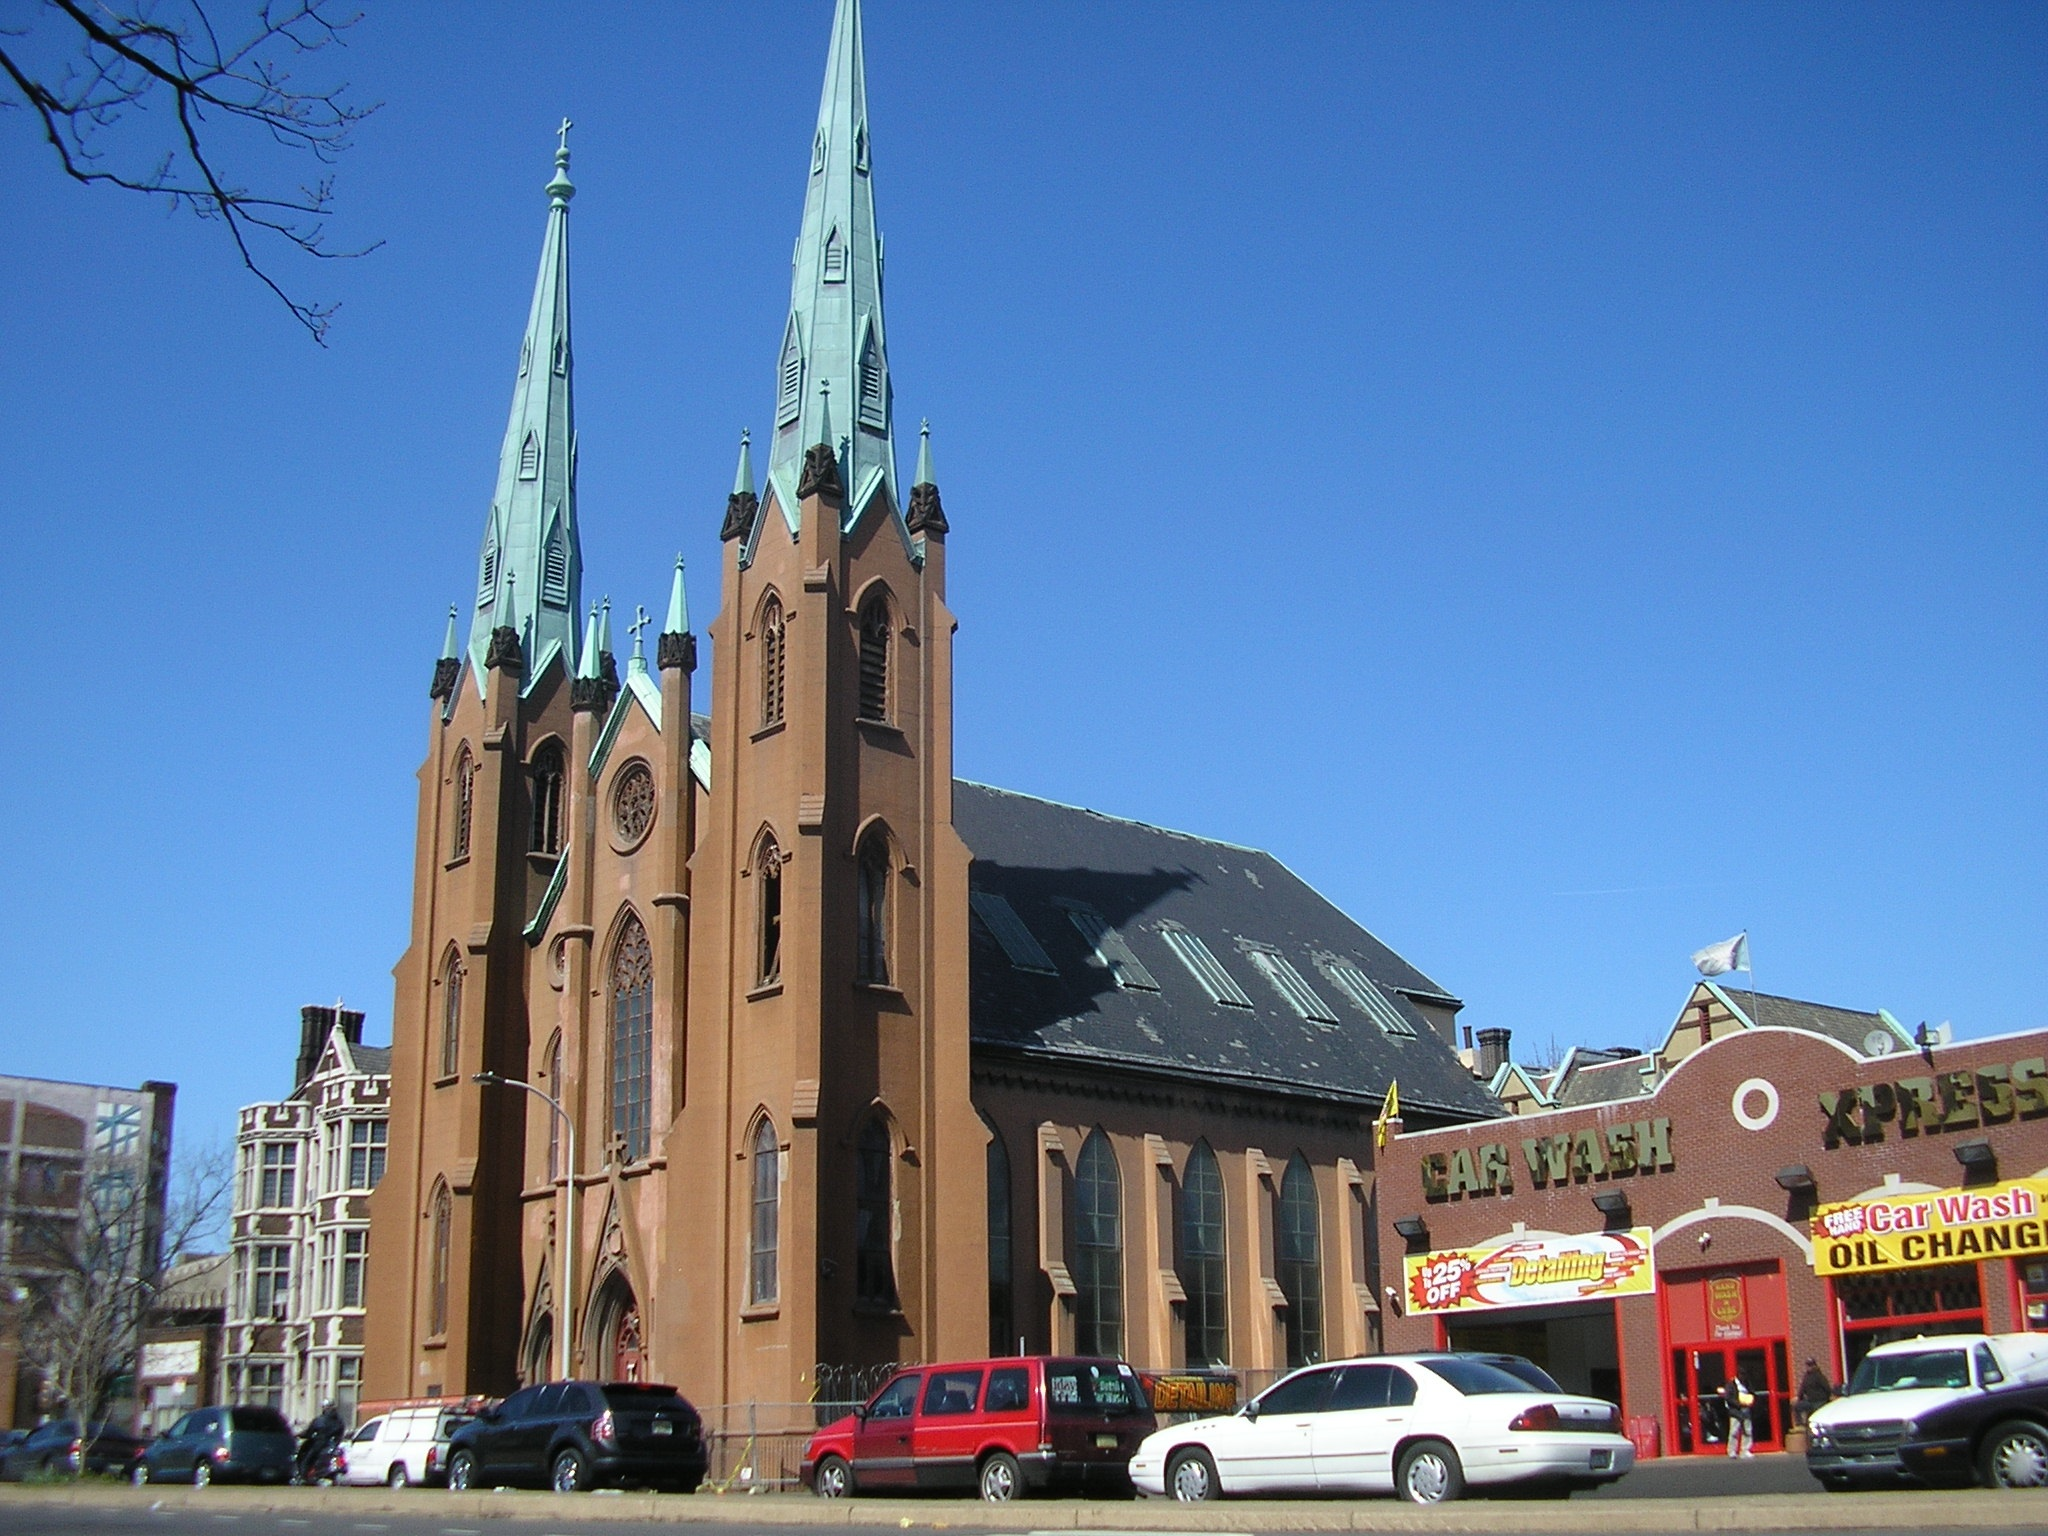 The church was built by architect Patrick Charles Keely in 1848-49.